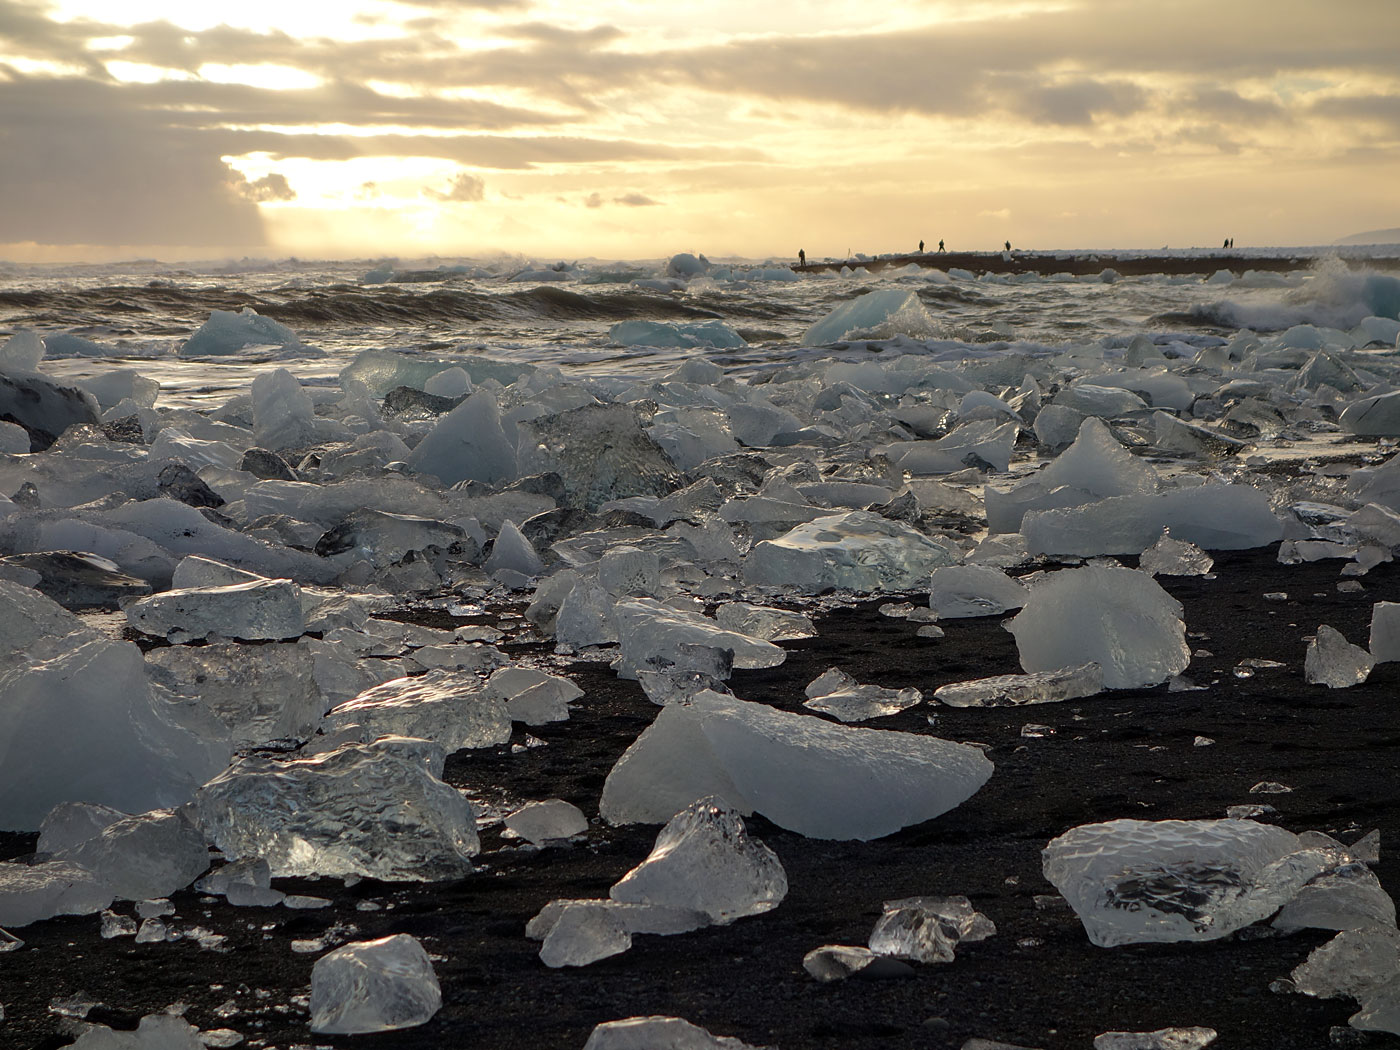 Jökulsárlón. Ice. I. - ... galcier lagoon <a href='http://en.wikipedia.org/wiki/J�kuls�rl�n' target='_blank' class='linksnormal'>Jökulsárlón</a>, beach. But first to the beach where blocks of ice drifted back to the beach. (16 November 2013)